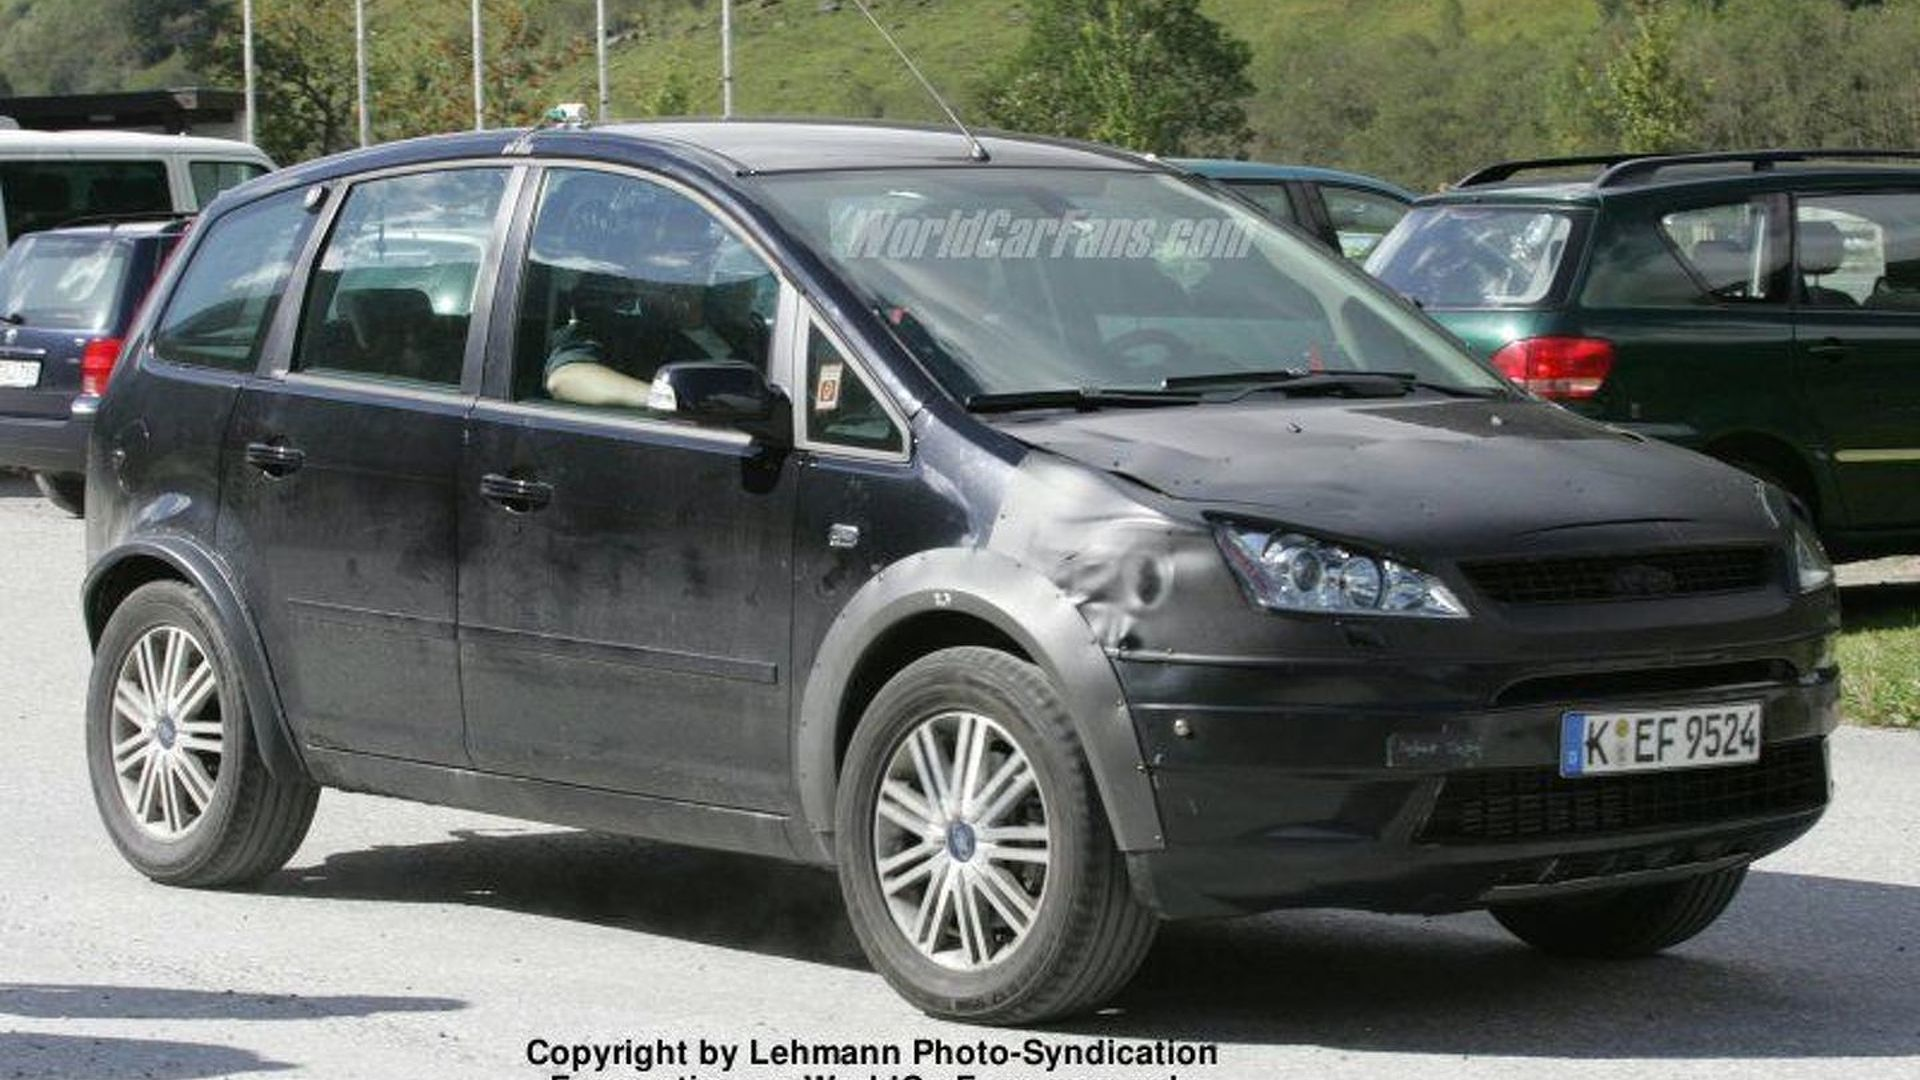 SPY PHOTOS: New Ford C-Max 4x4